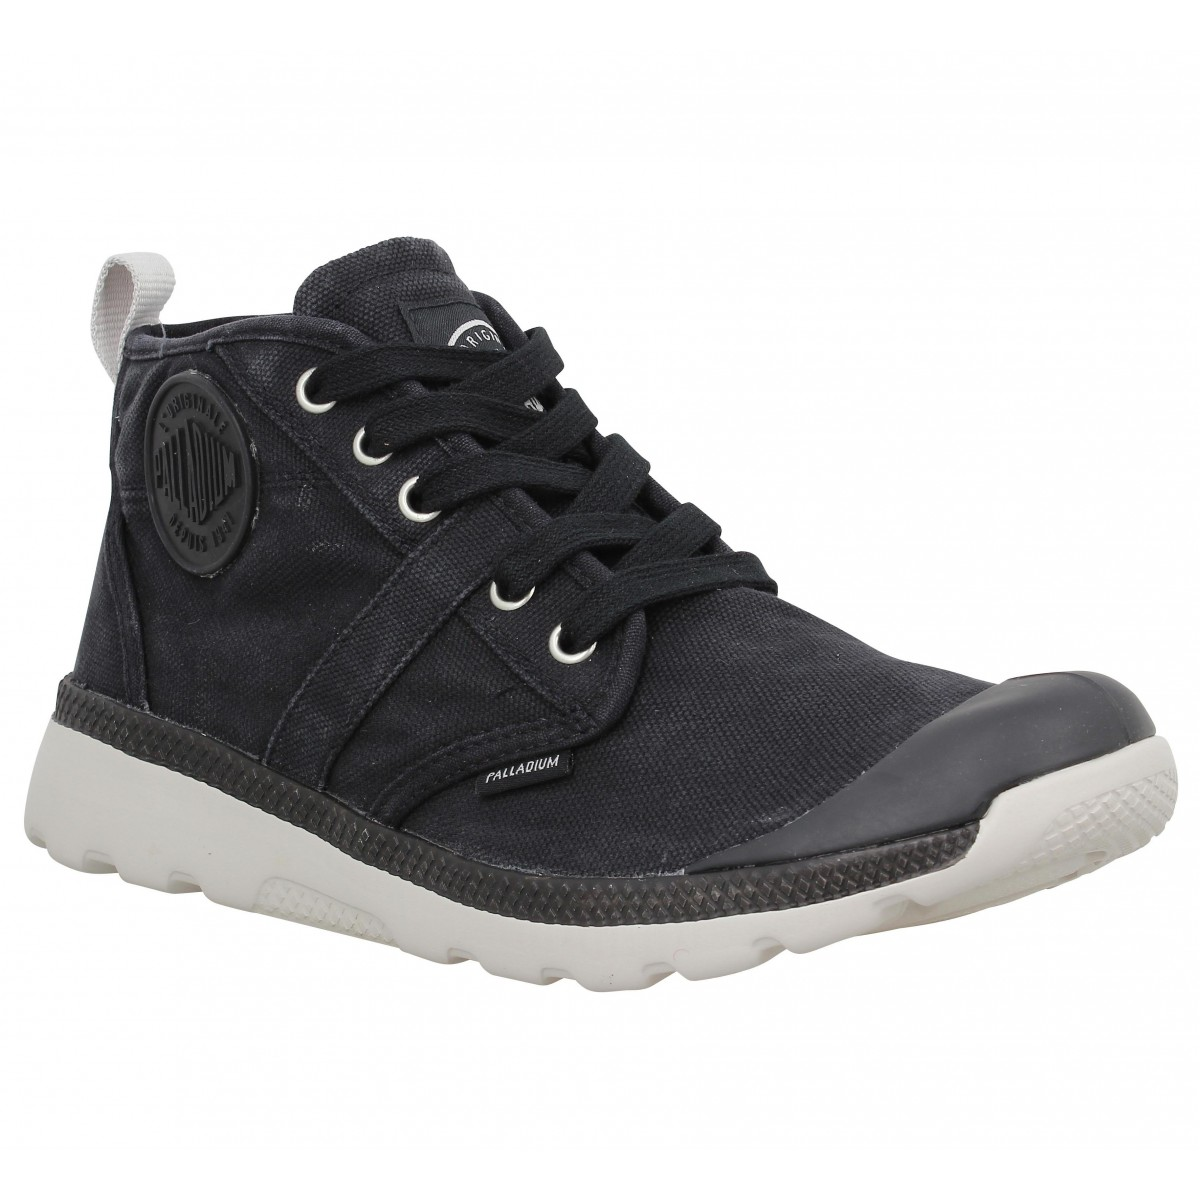 Baskets PALLADIUM Palavil Hi Noir